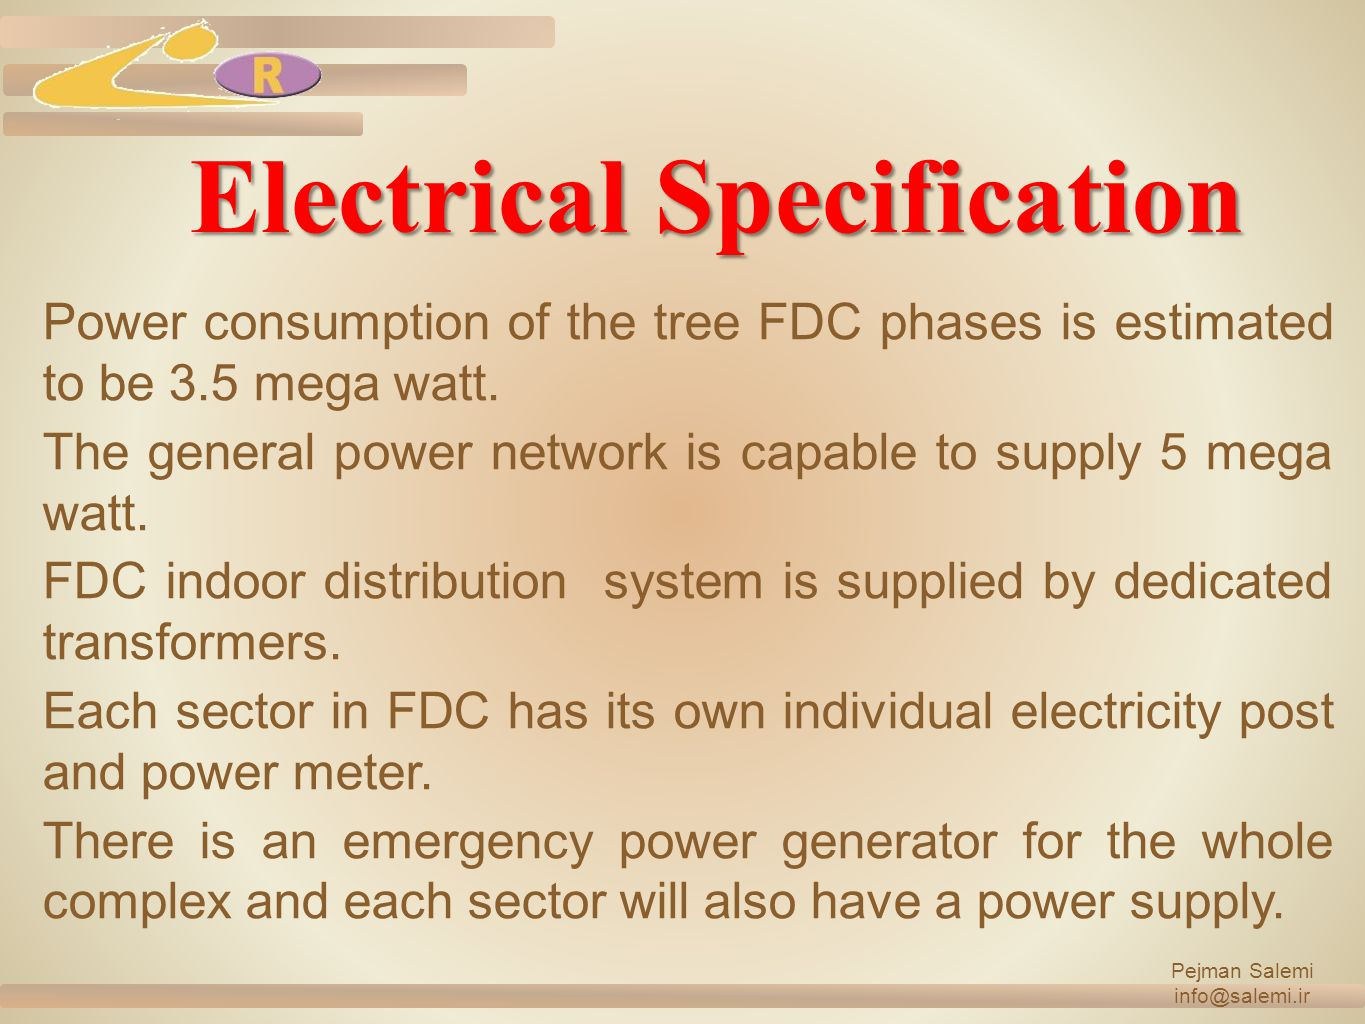 Electrical Specification Pejman Salemi info@salemi.ir Power consumption of the tree FDC phases is estimated to be 3.5 mega watt.